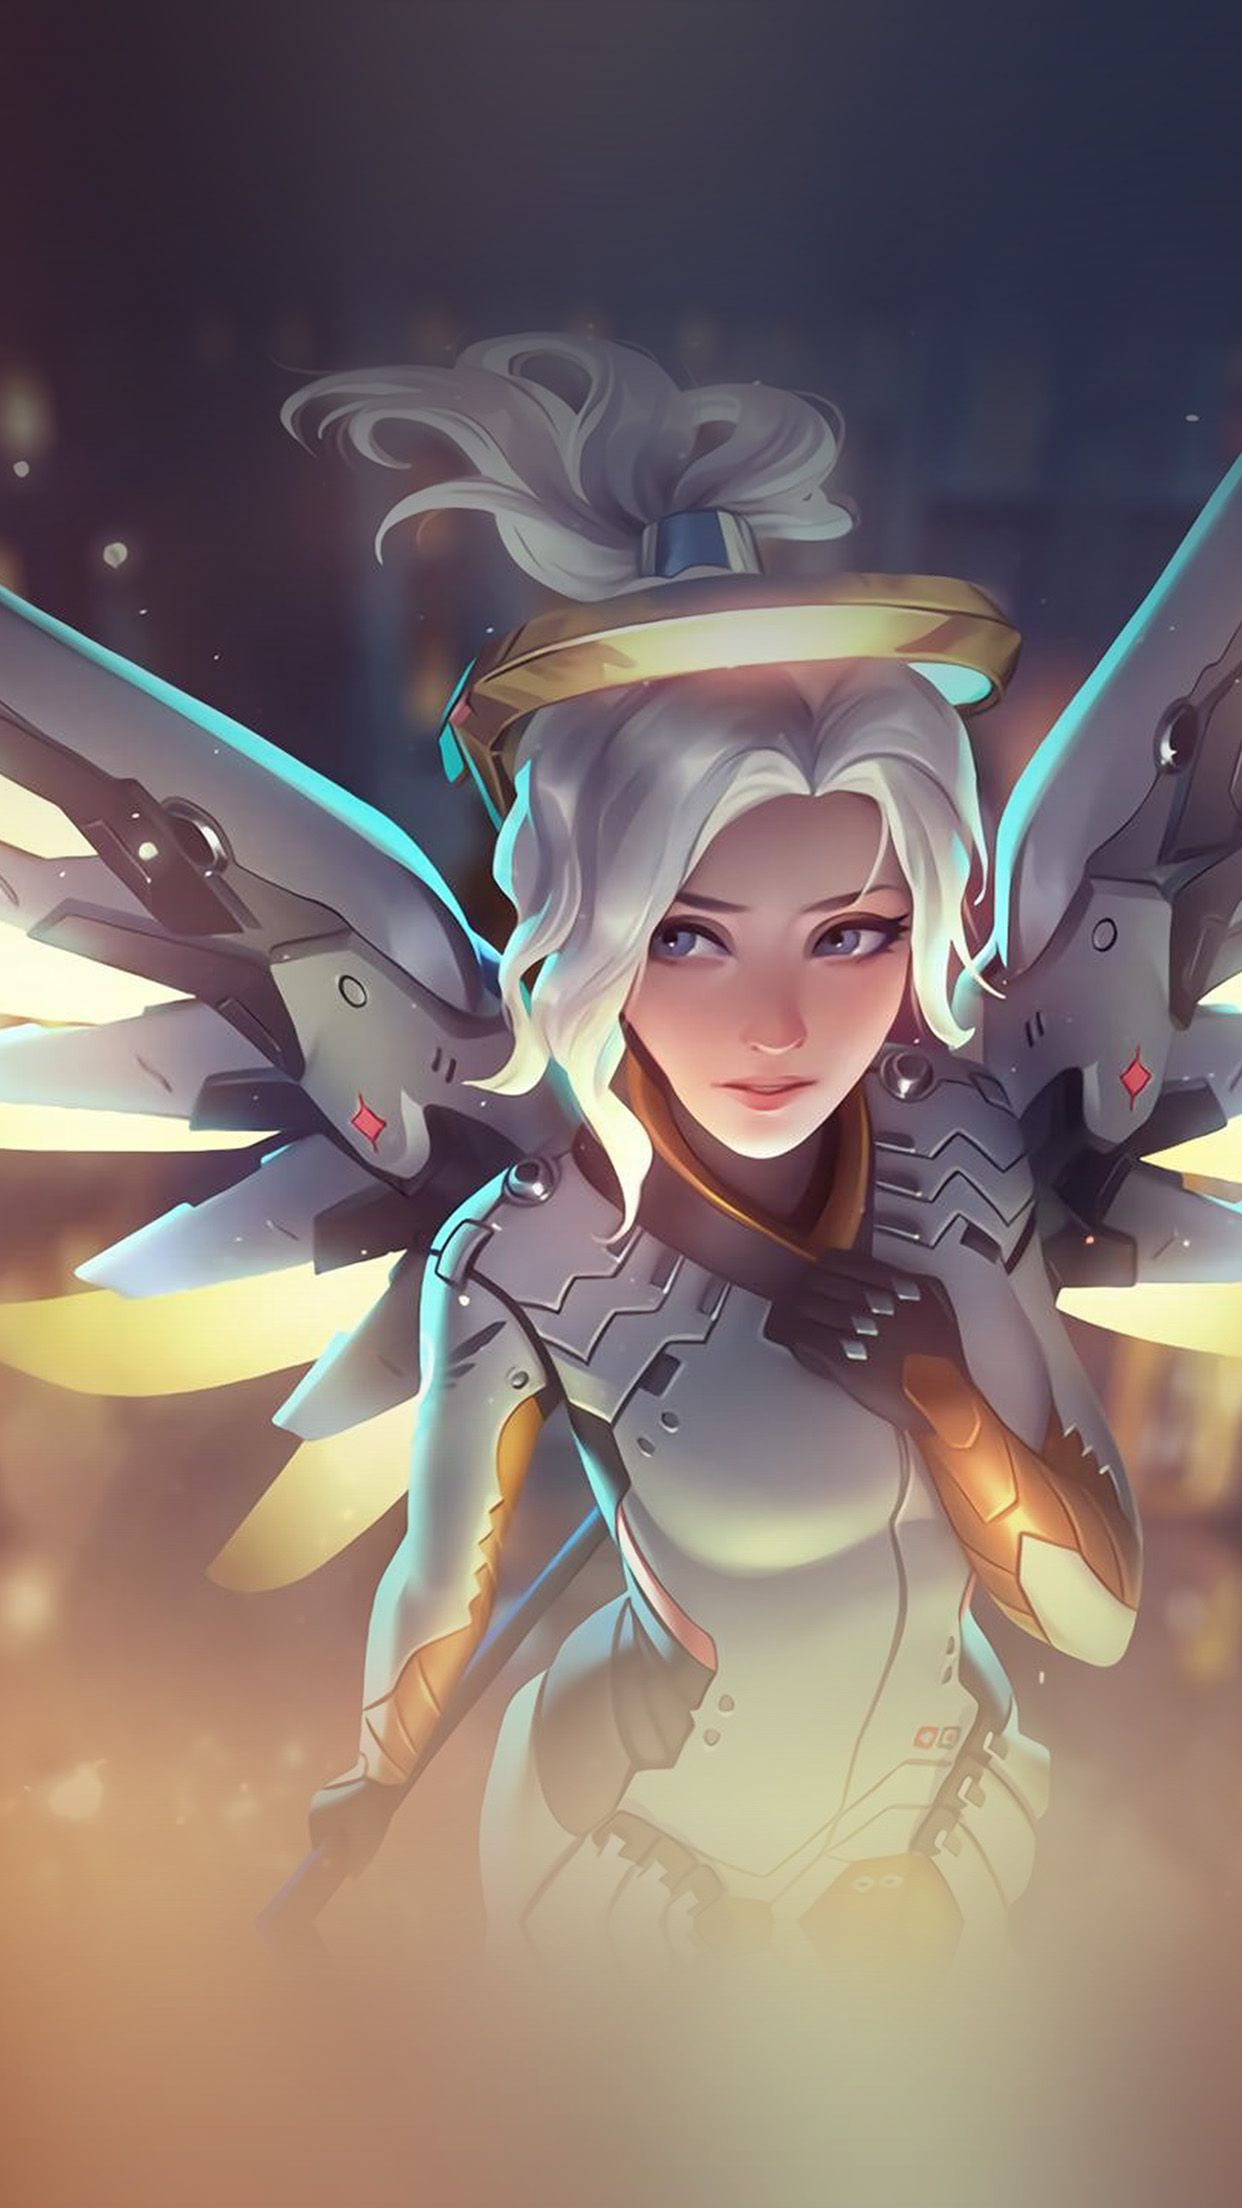 overwatch wallpaper iphone  iPhonepapers.com | iPhone 8 wallpaper | at82-mercy-overwatch-angel ...